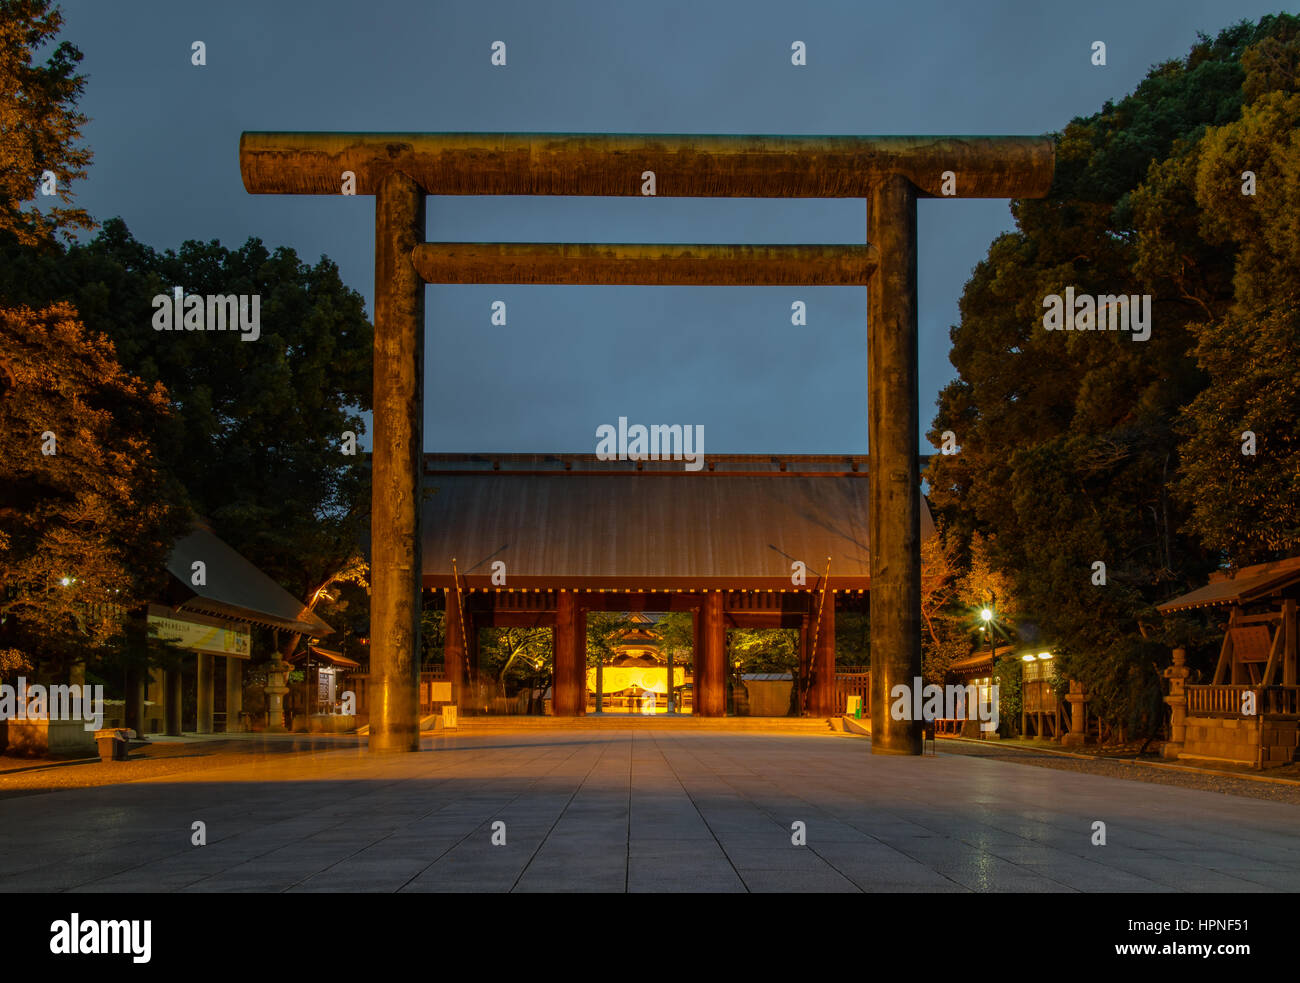 Yasukuni Shrine, often a controversial topic in Asian politics. - Stock Image